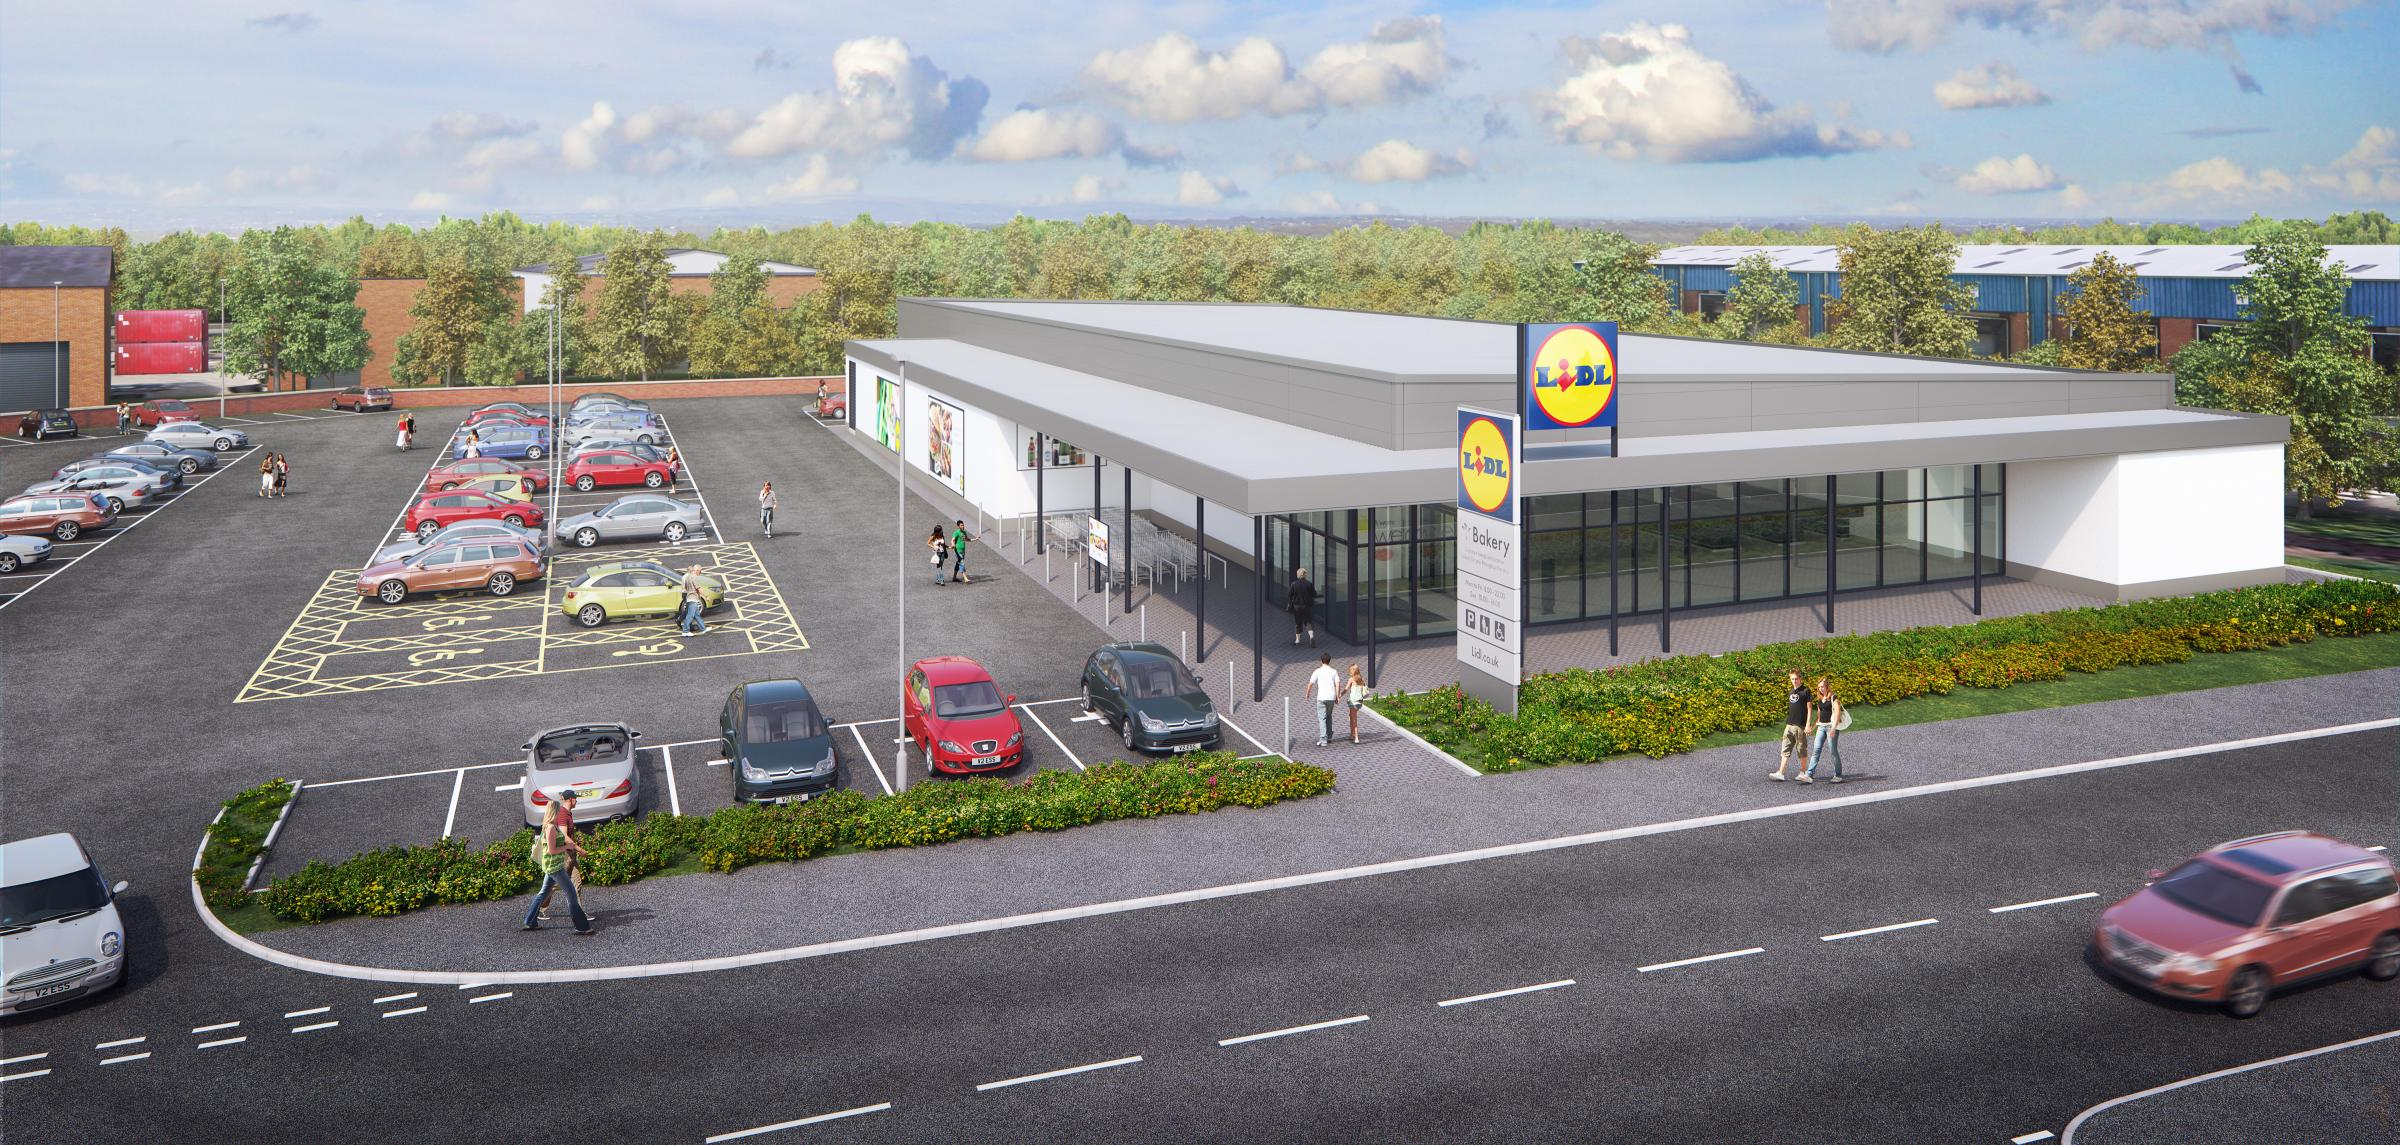 A CGI image for the new Lidl store on High Street in Golborne